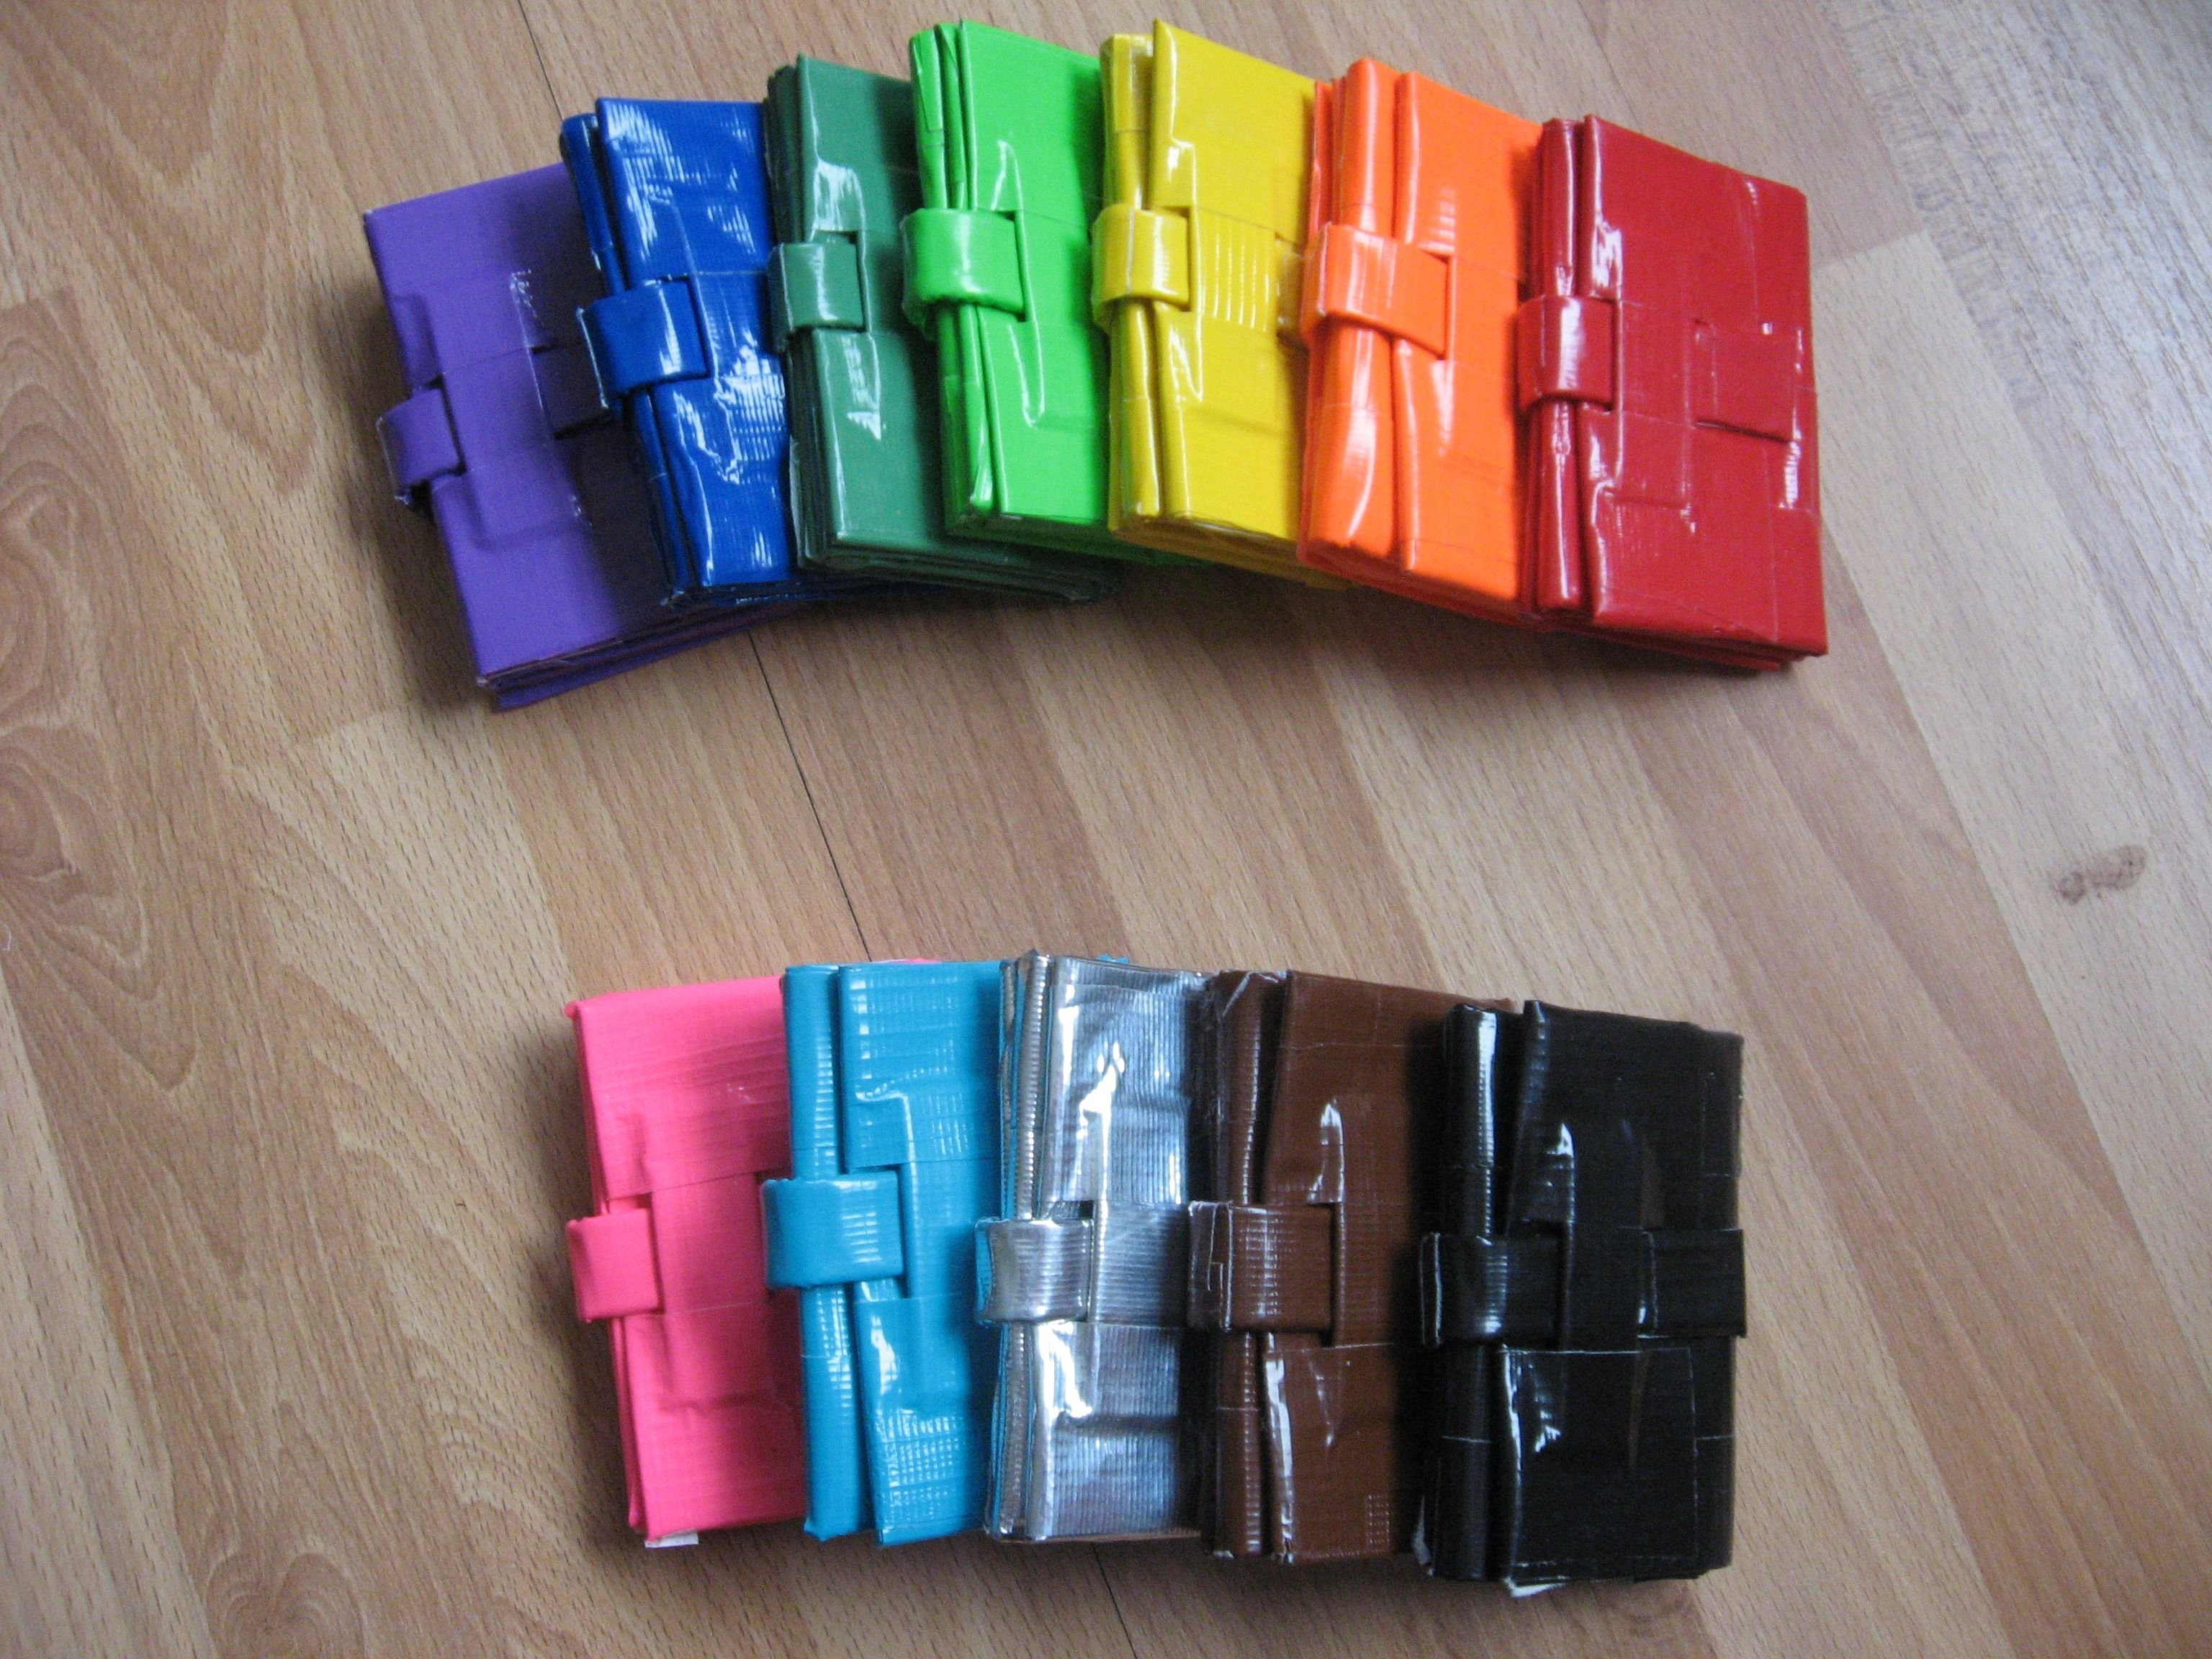 10 Attractive Duct Tape Ideas For Girls duct tape wallet designs ideas duct tape crafts e299a5tape 2020